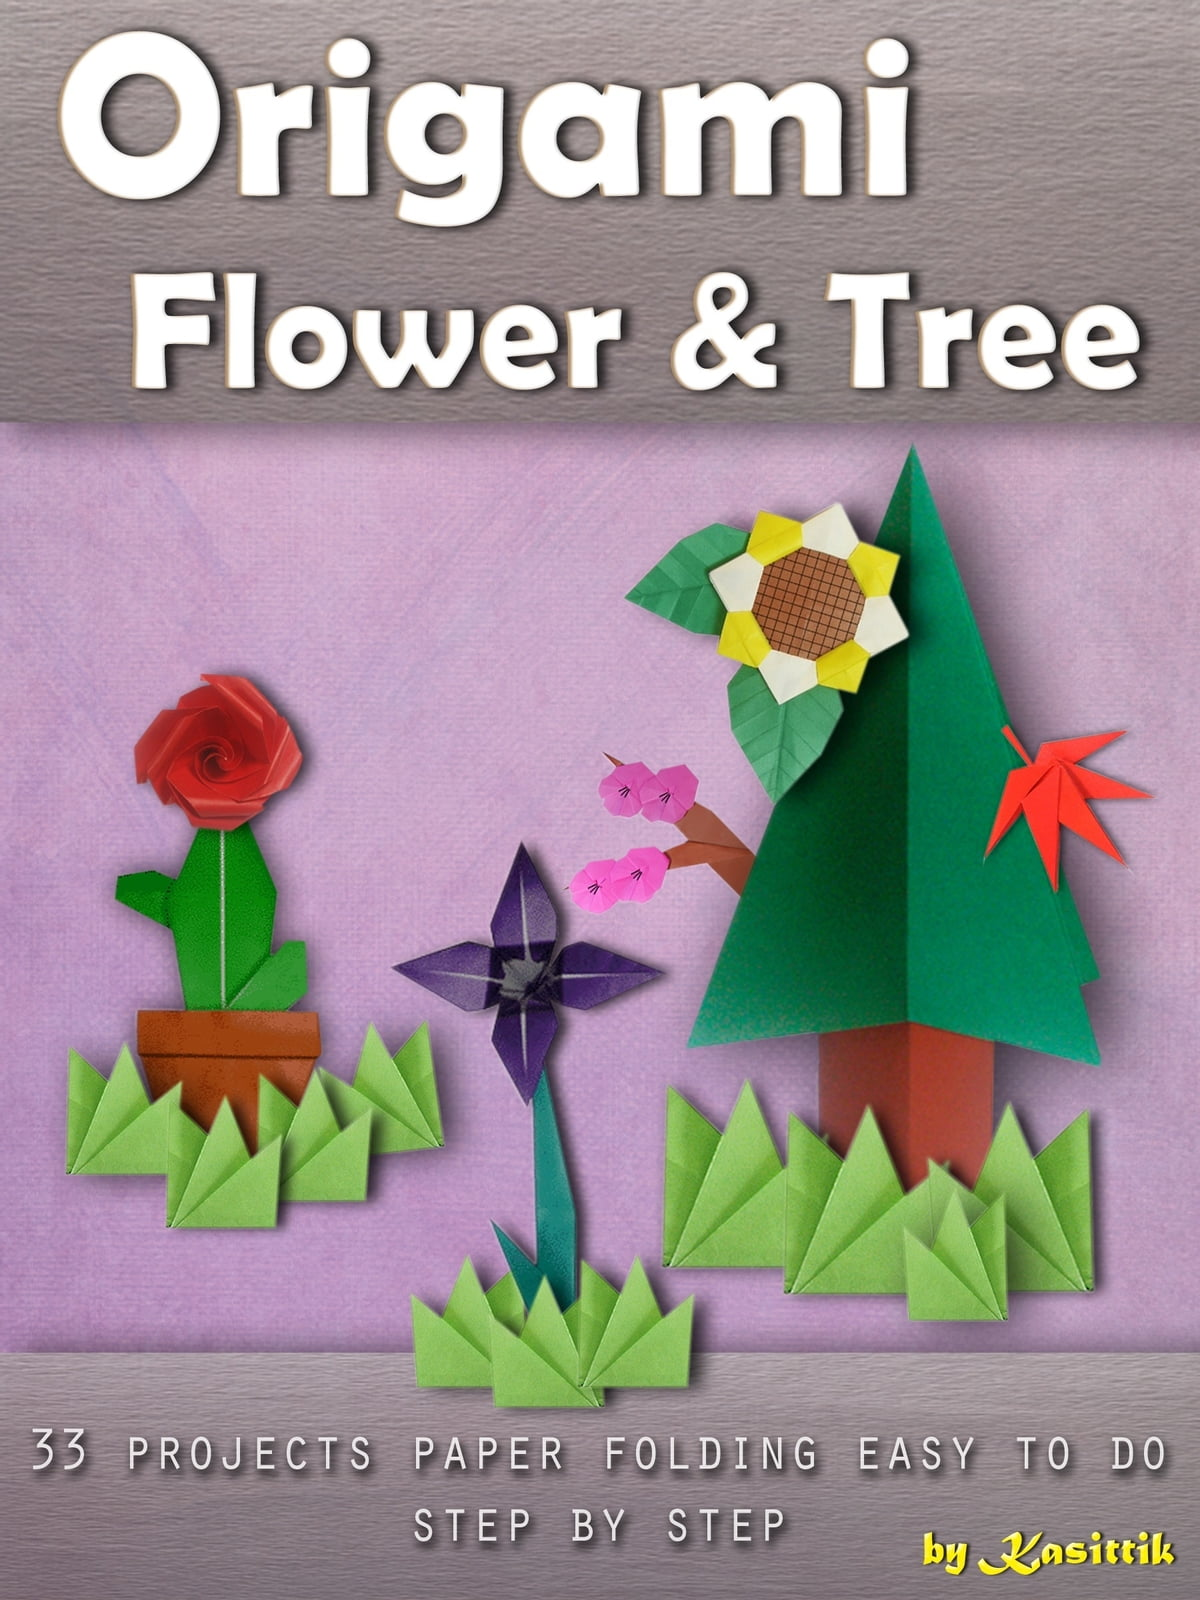 Colors Paper: How to make lily Paper Flower - Origami Flowers for ... | 1600x1200